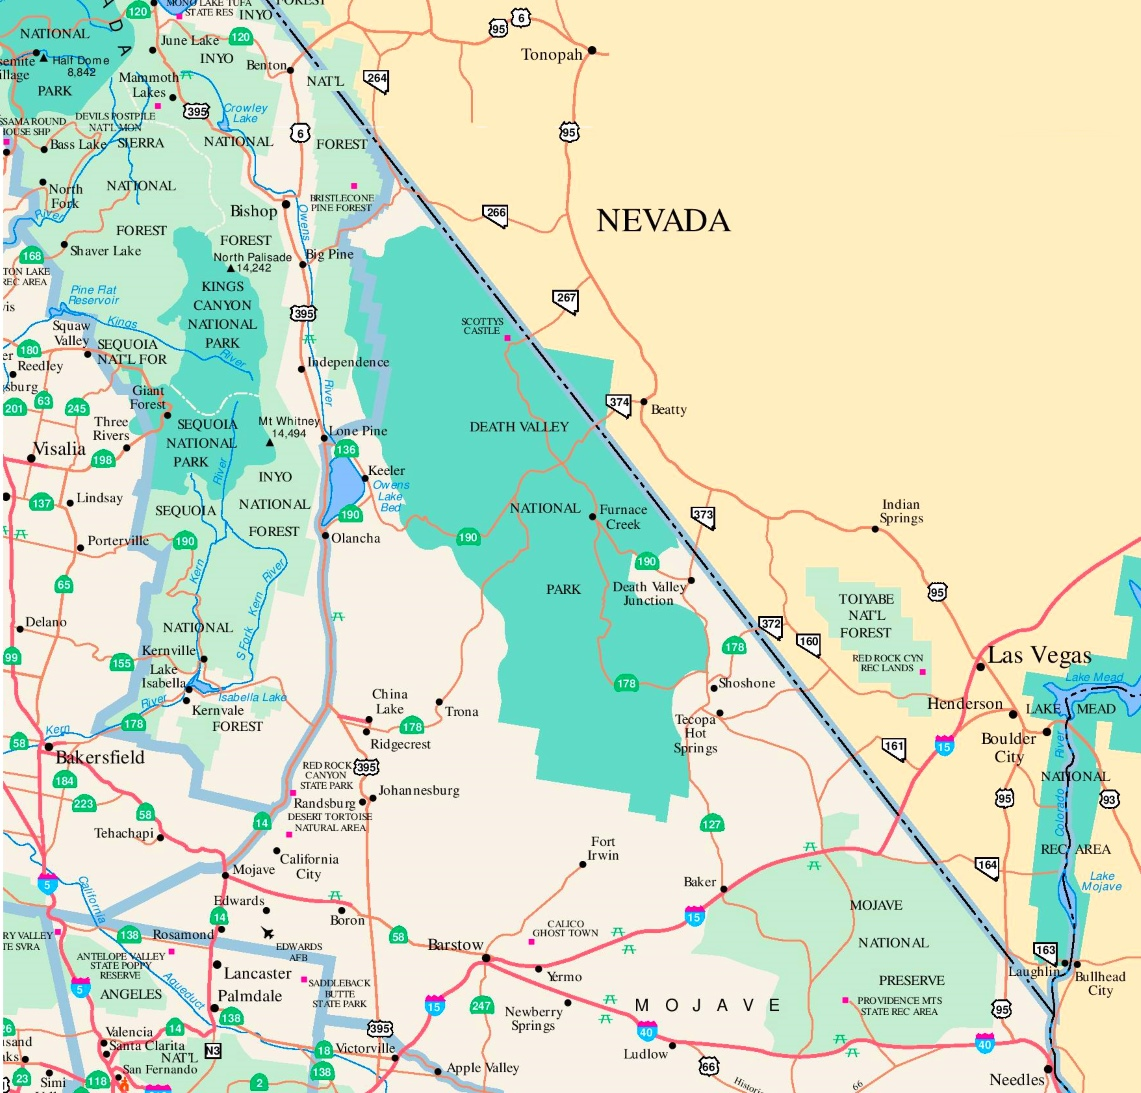 Valley area road map on